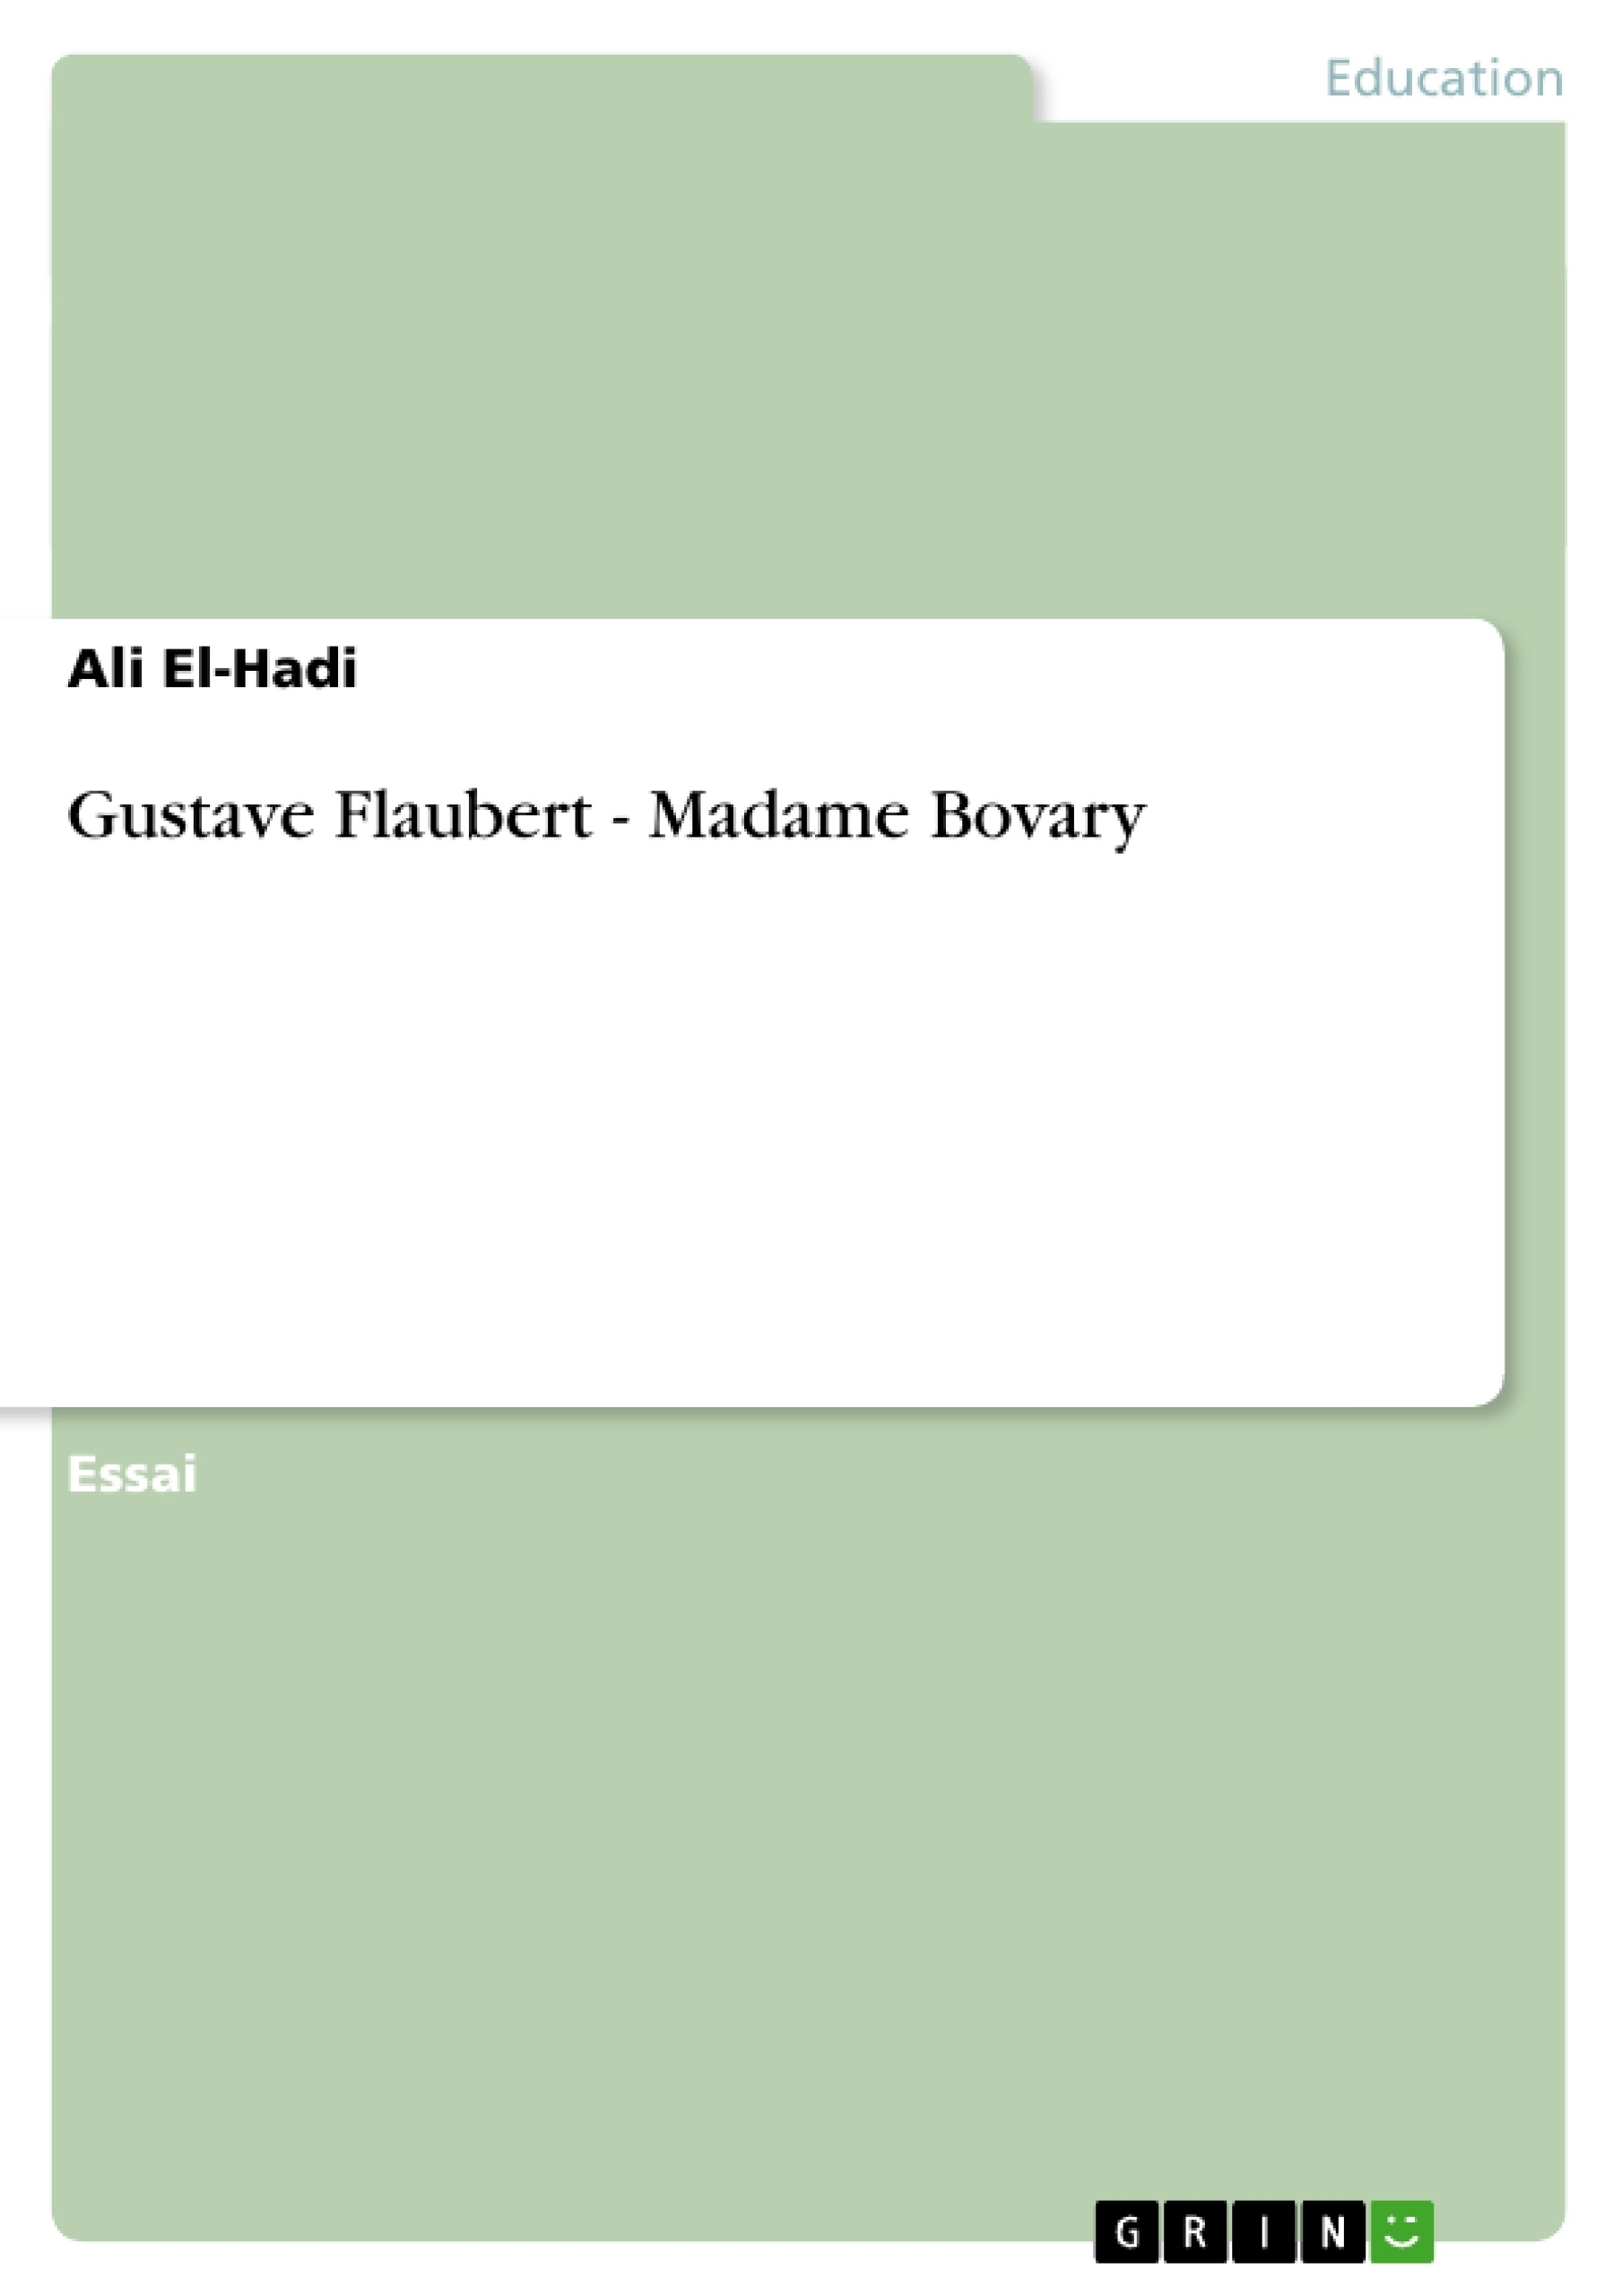 madame bovary and written on the body essay Below is an essay on madame bovary: part ii from anti essays, your source for research papers, essays, and term paper examples in madame bovary, flaubert explores the flaws of romanticism through the burdens emma brings upon herself because of her romantic ideals.